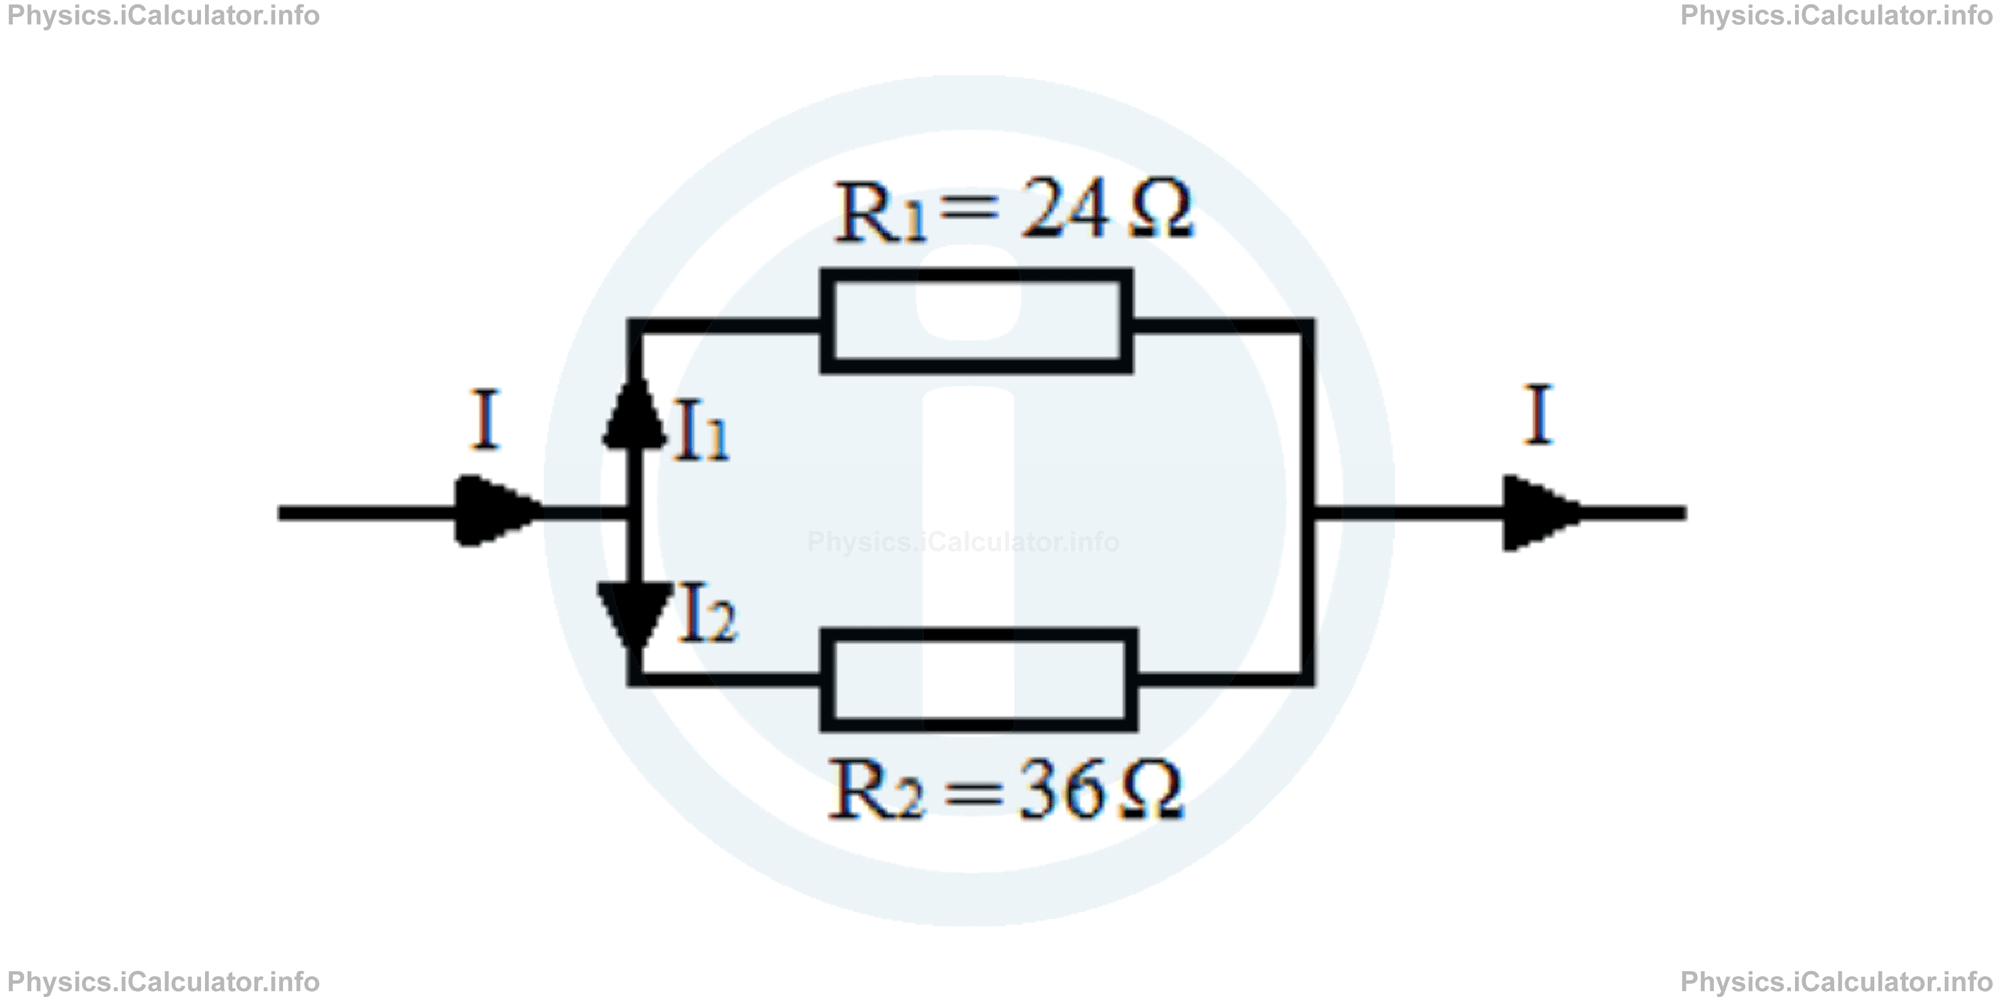 Physics Tutorials: This image provides visual information for the physics tutorial Electric Resistance. Combinations of Resistors